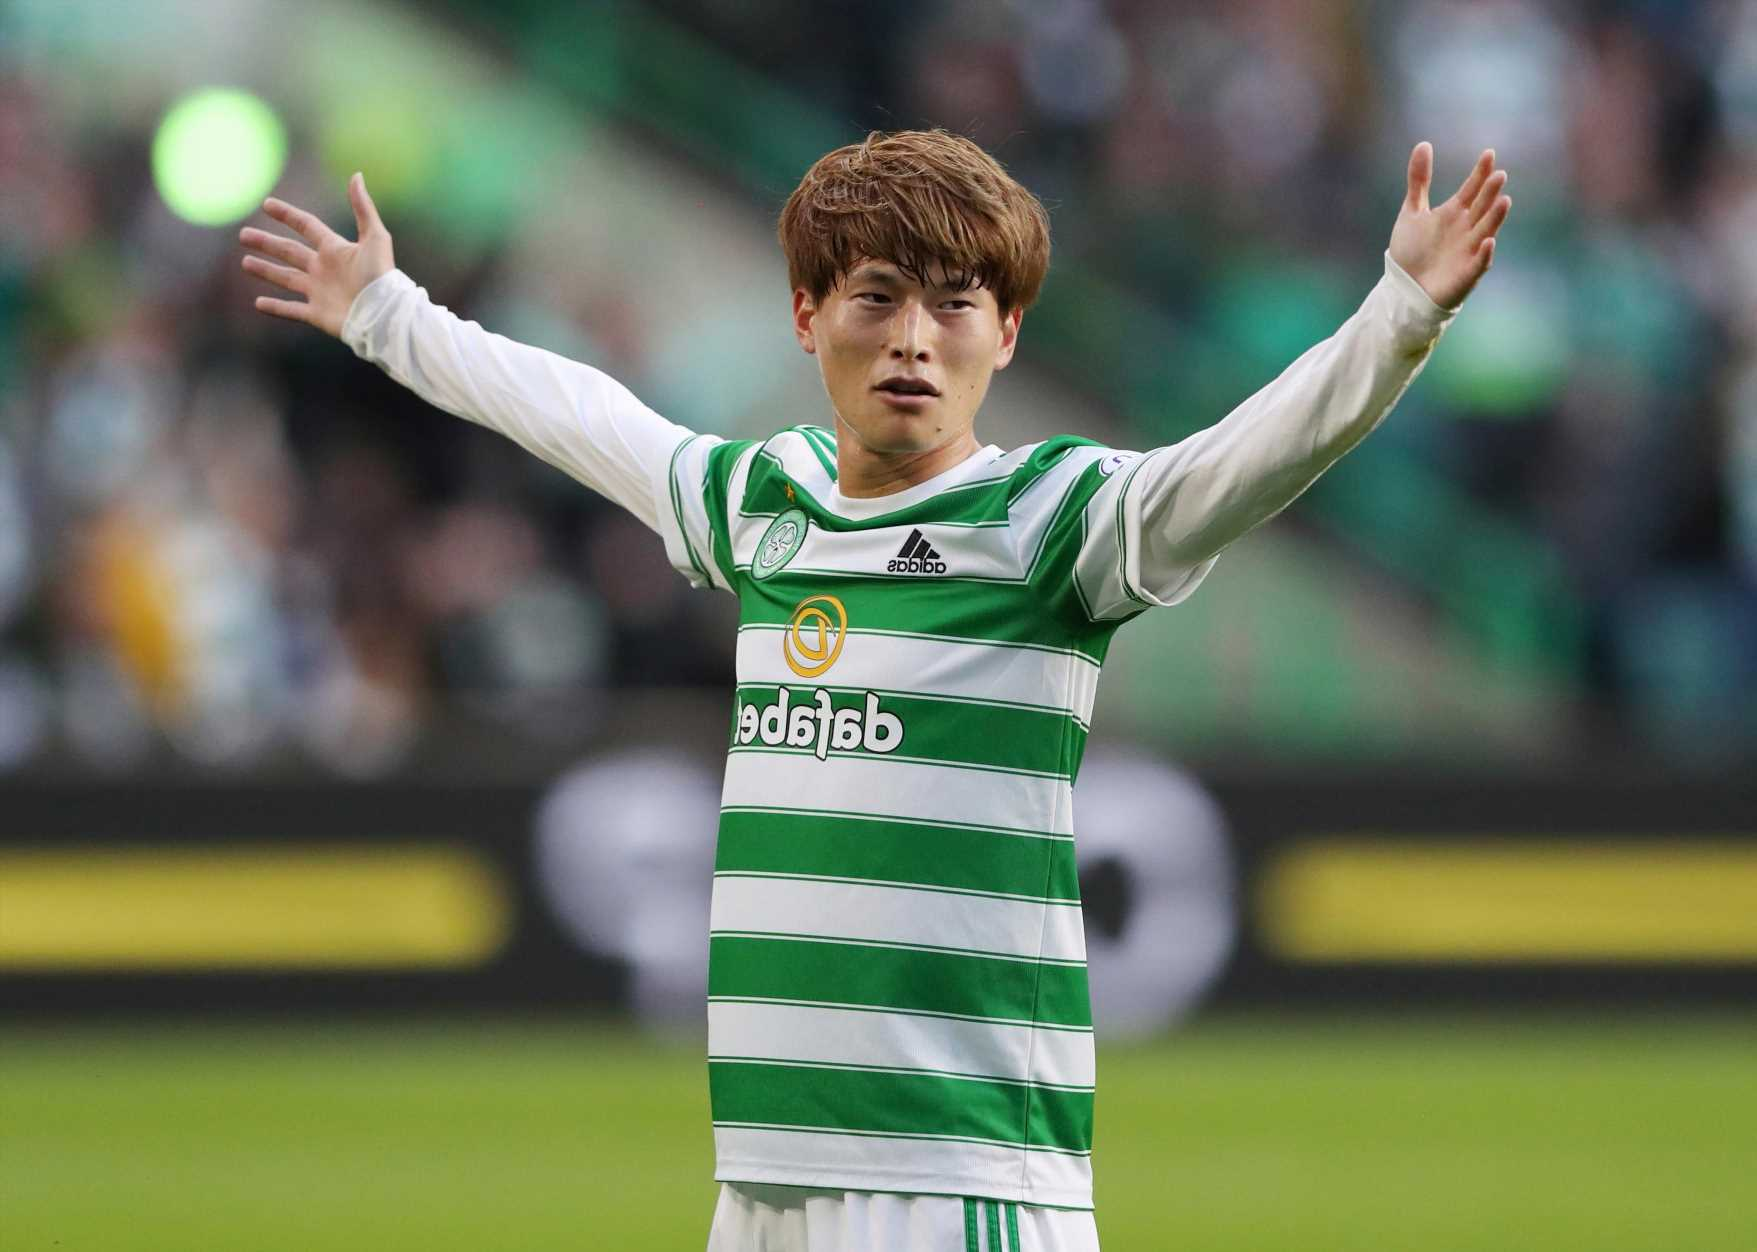 Two arrested over 'racist chants on Rangers supporters bus' aimed at Celtic ace Kyogo Furuhashi